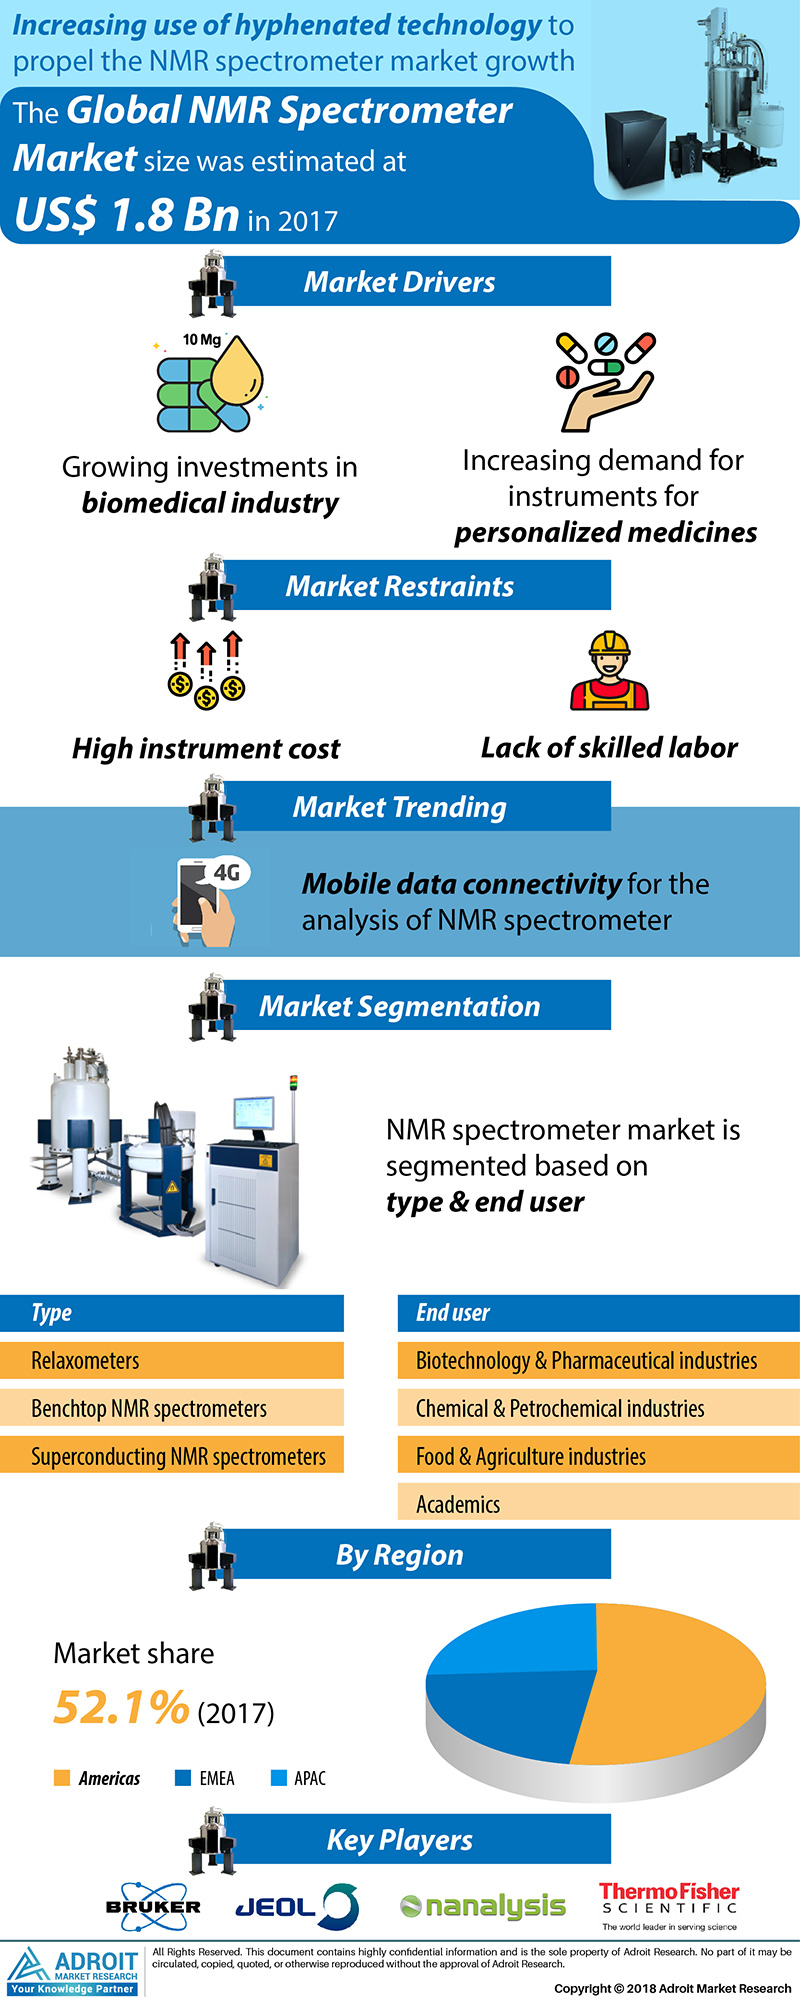 Global Nuclear Magnetic Resonance (NMR) Spectrometer Market Size 2017 By Type, Application and Region - Analysis, Size, Share, Growth Trends and Forecasts 2015 to 2025